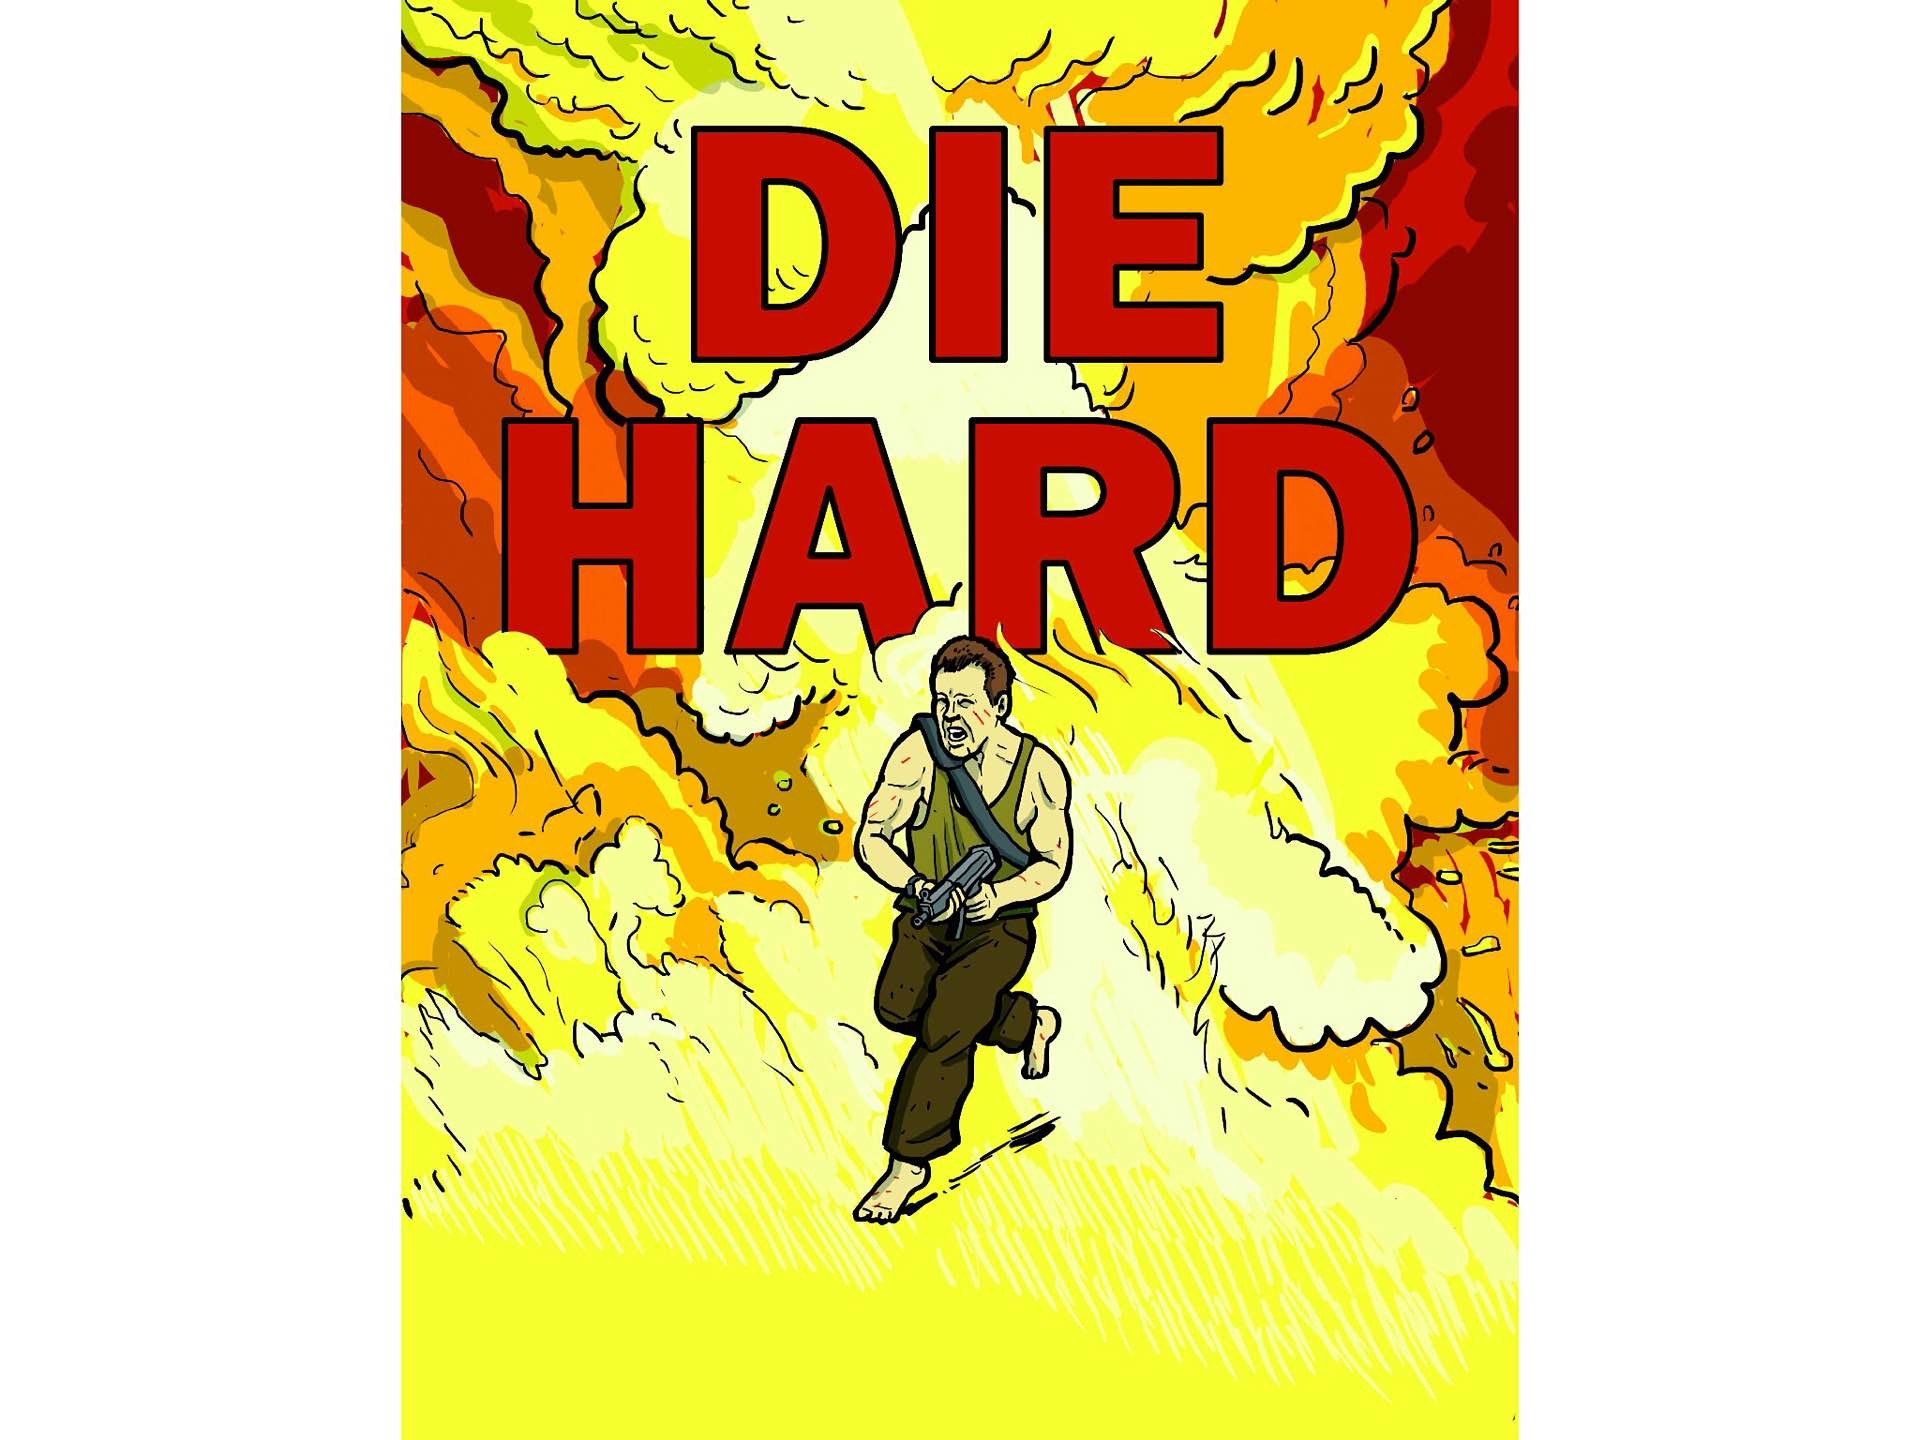 The official Die Hard coloring book. ($11) — Warning: Book contains violent content and is not suitable for children.